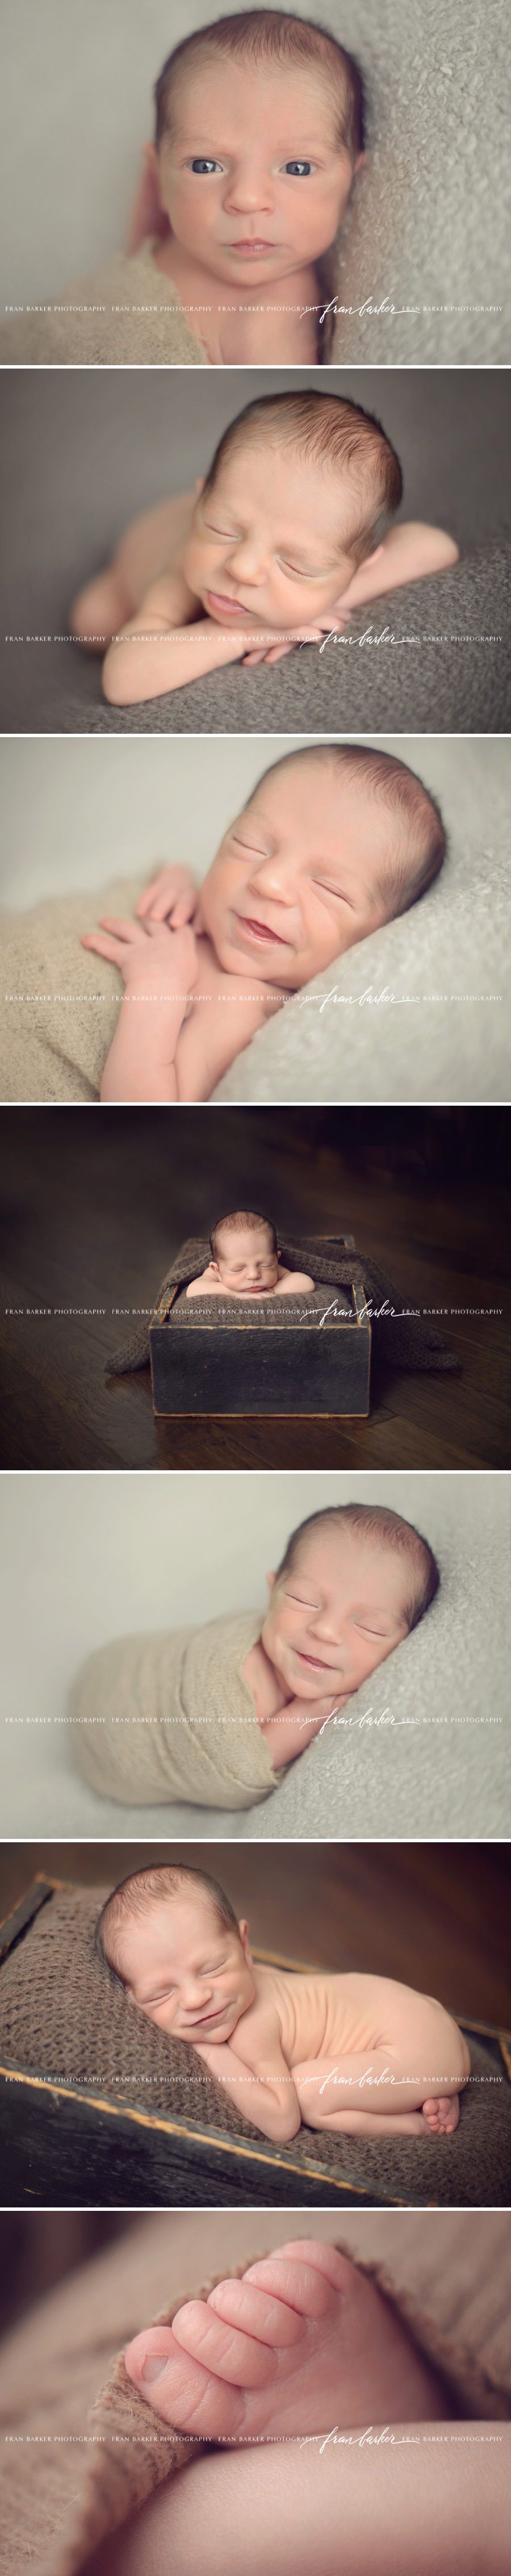 baby photographer in columbus images